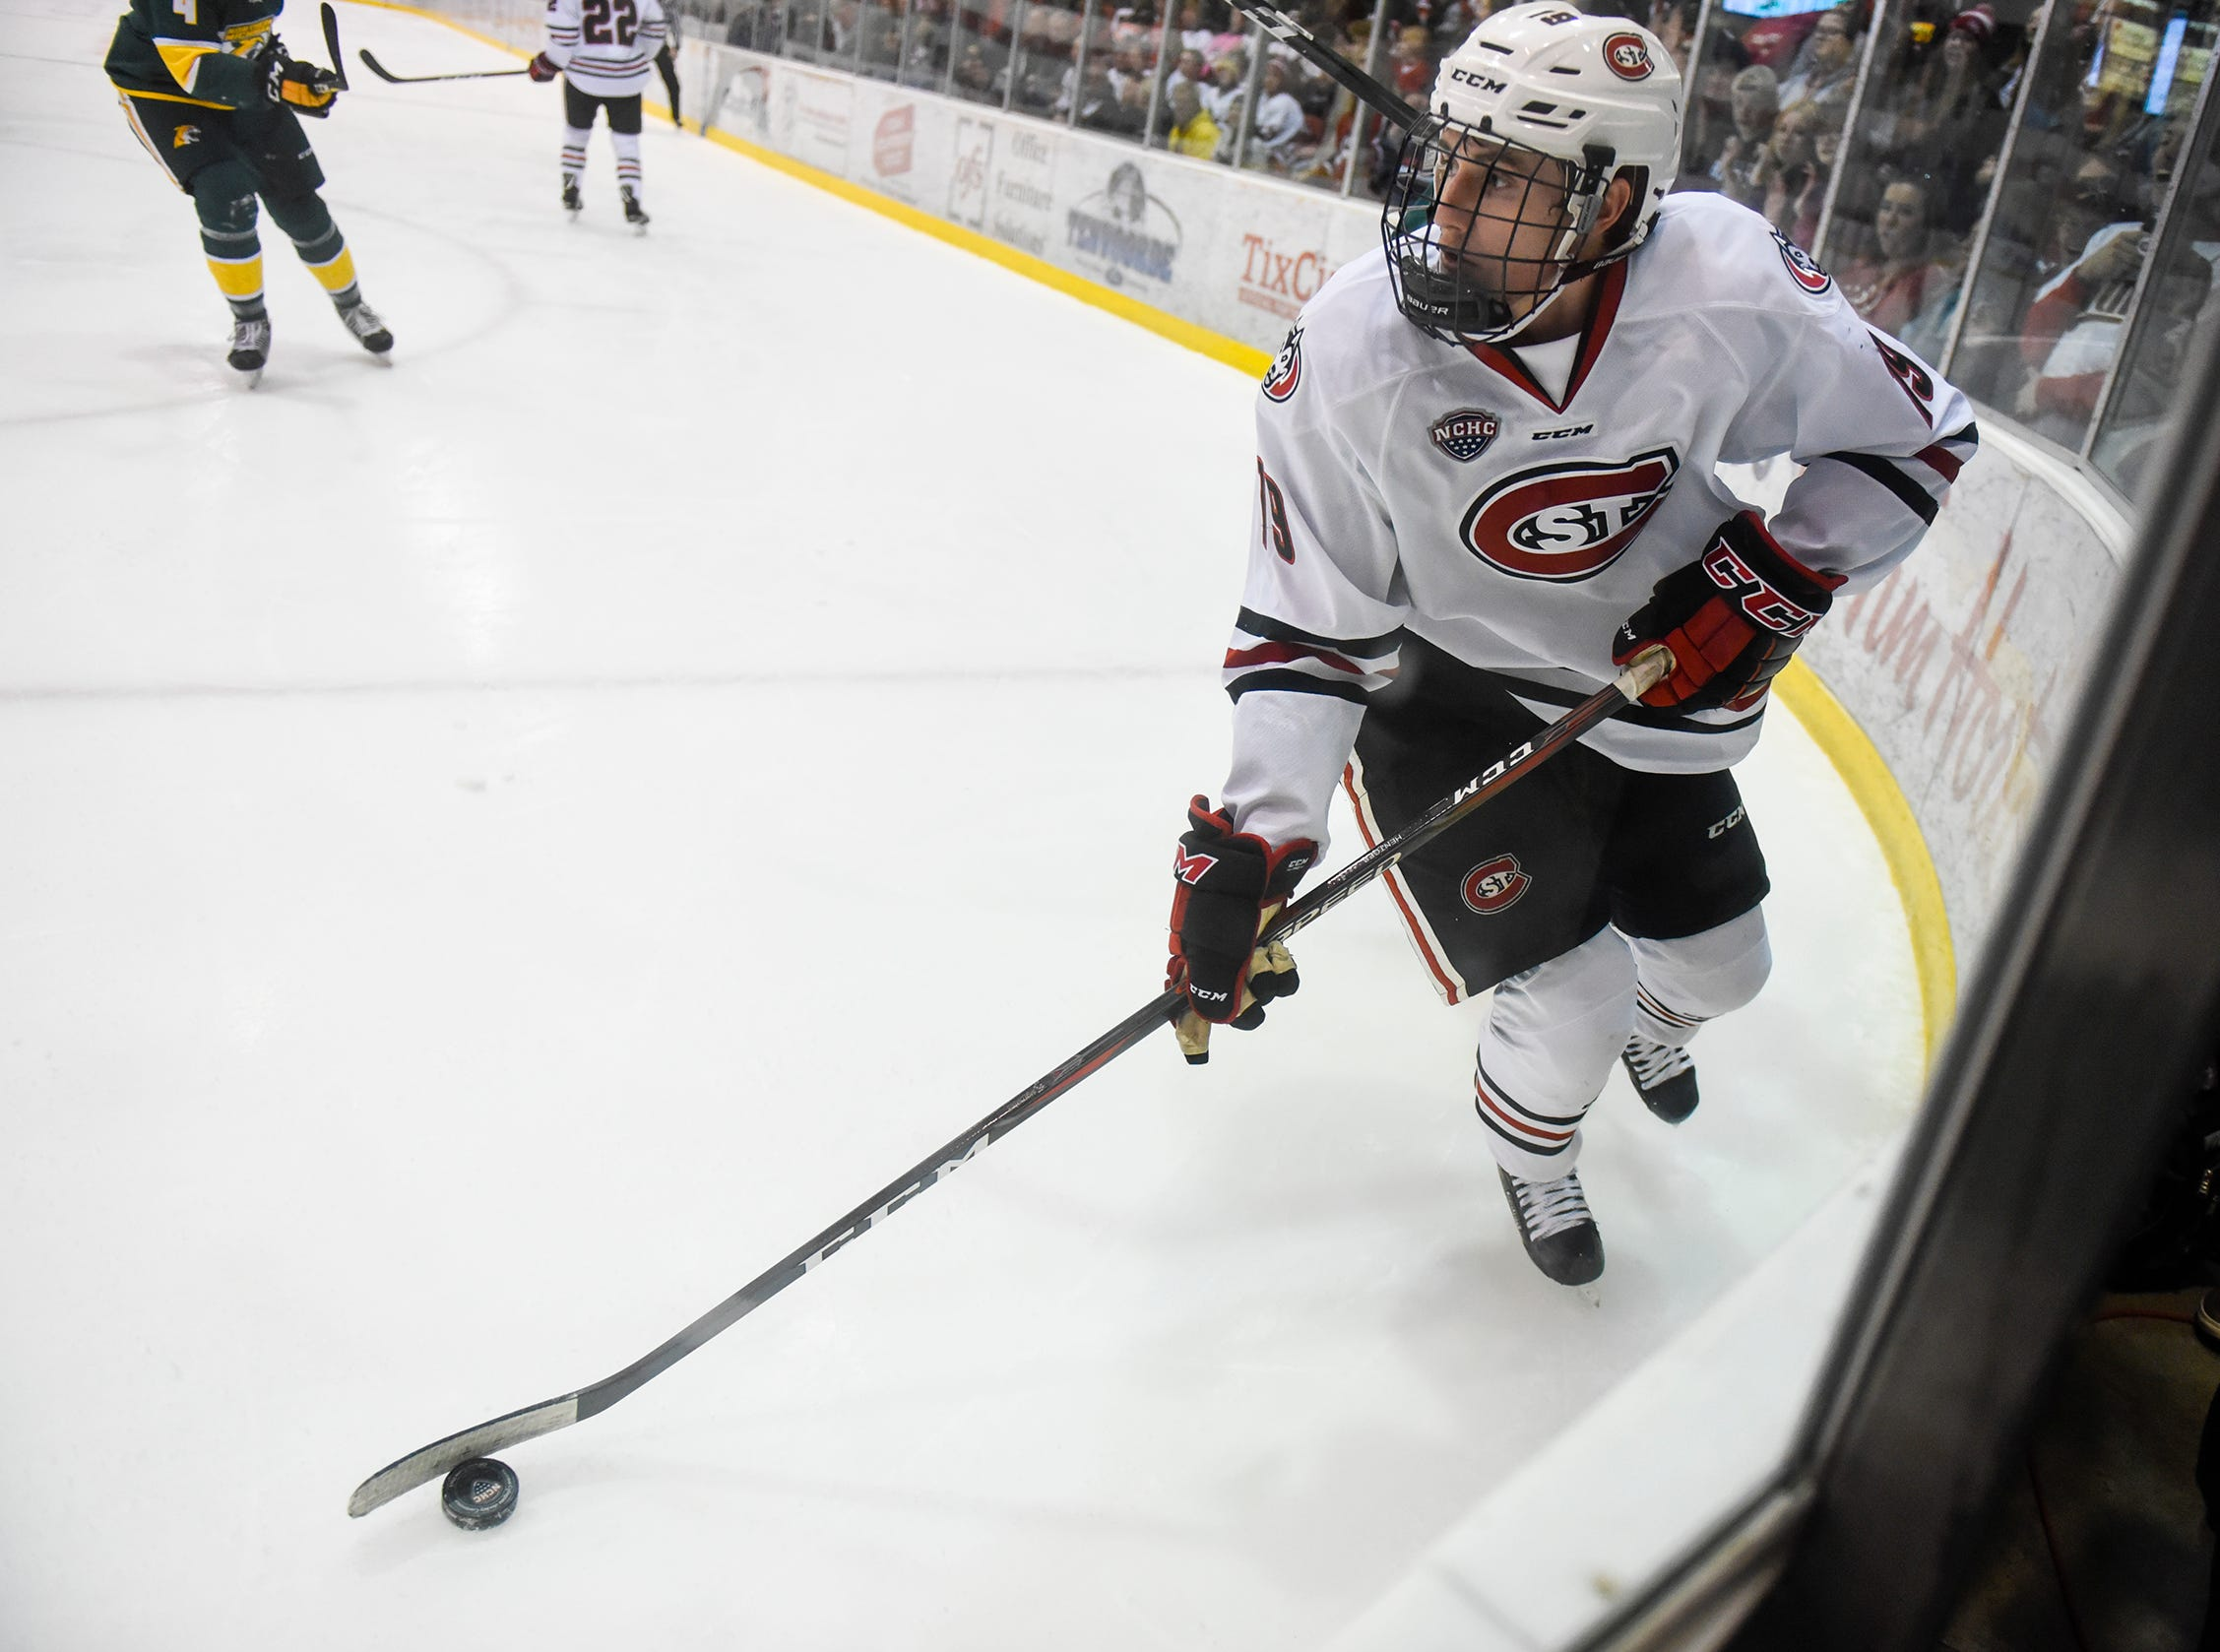 St. Cloud State's Sam Hentges skates with the puck along the boards during the Saturday, Oct. 20, game against Northern Michigan at the Herb Brooks National Hockey Center in St. Cloud.